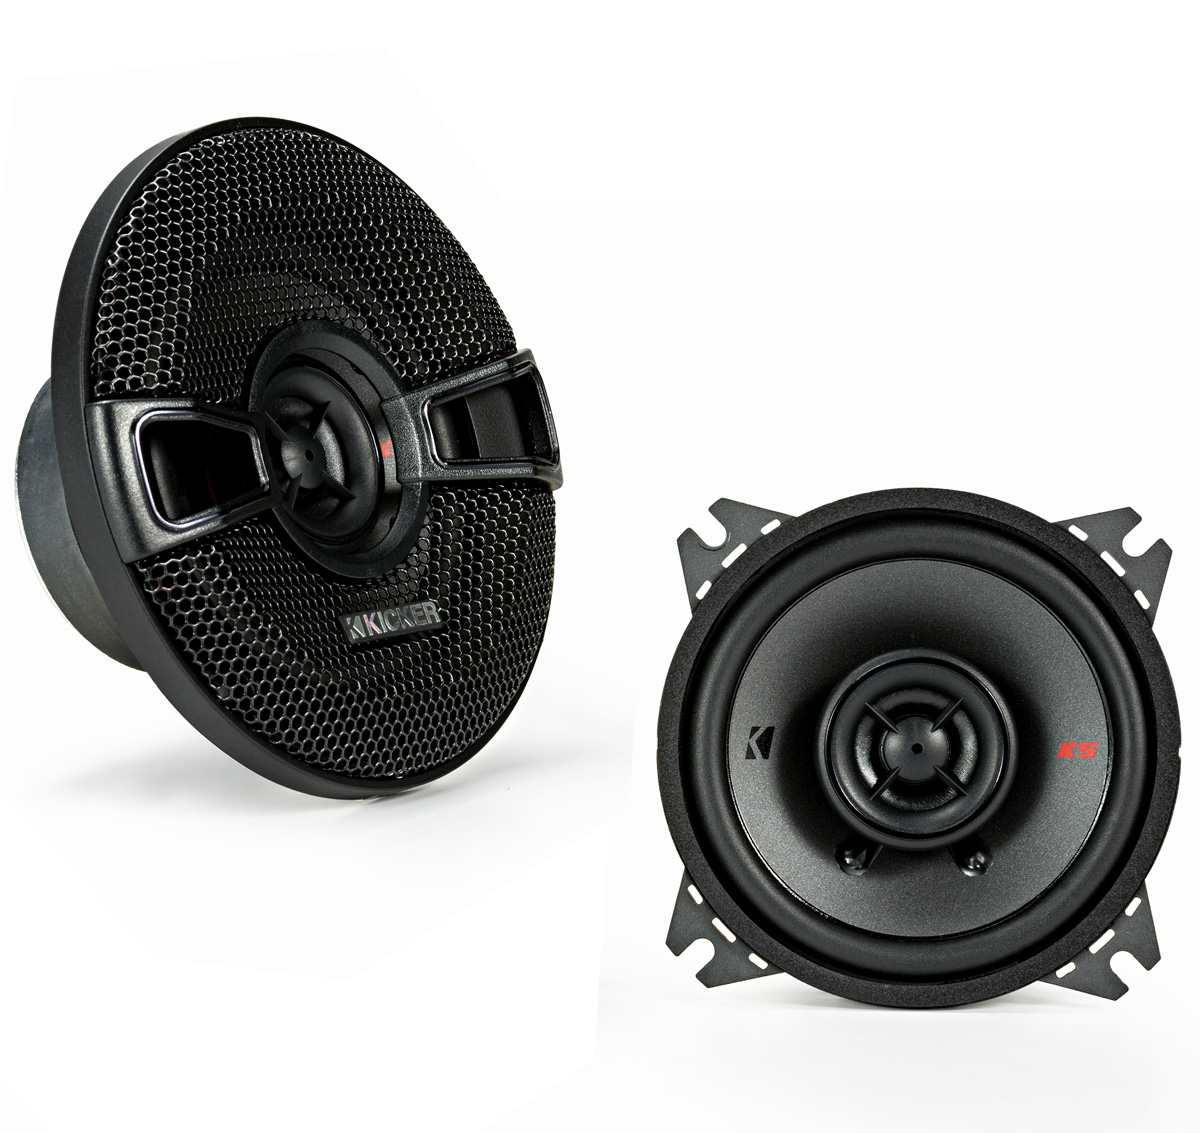 "KICKER 44KSC404 4"" (100mm) Coax Spkrs w/.5""(13mm) tweeters, 4ohm, RoHS Compliant"